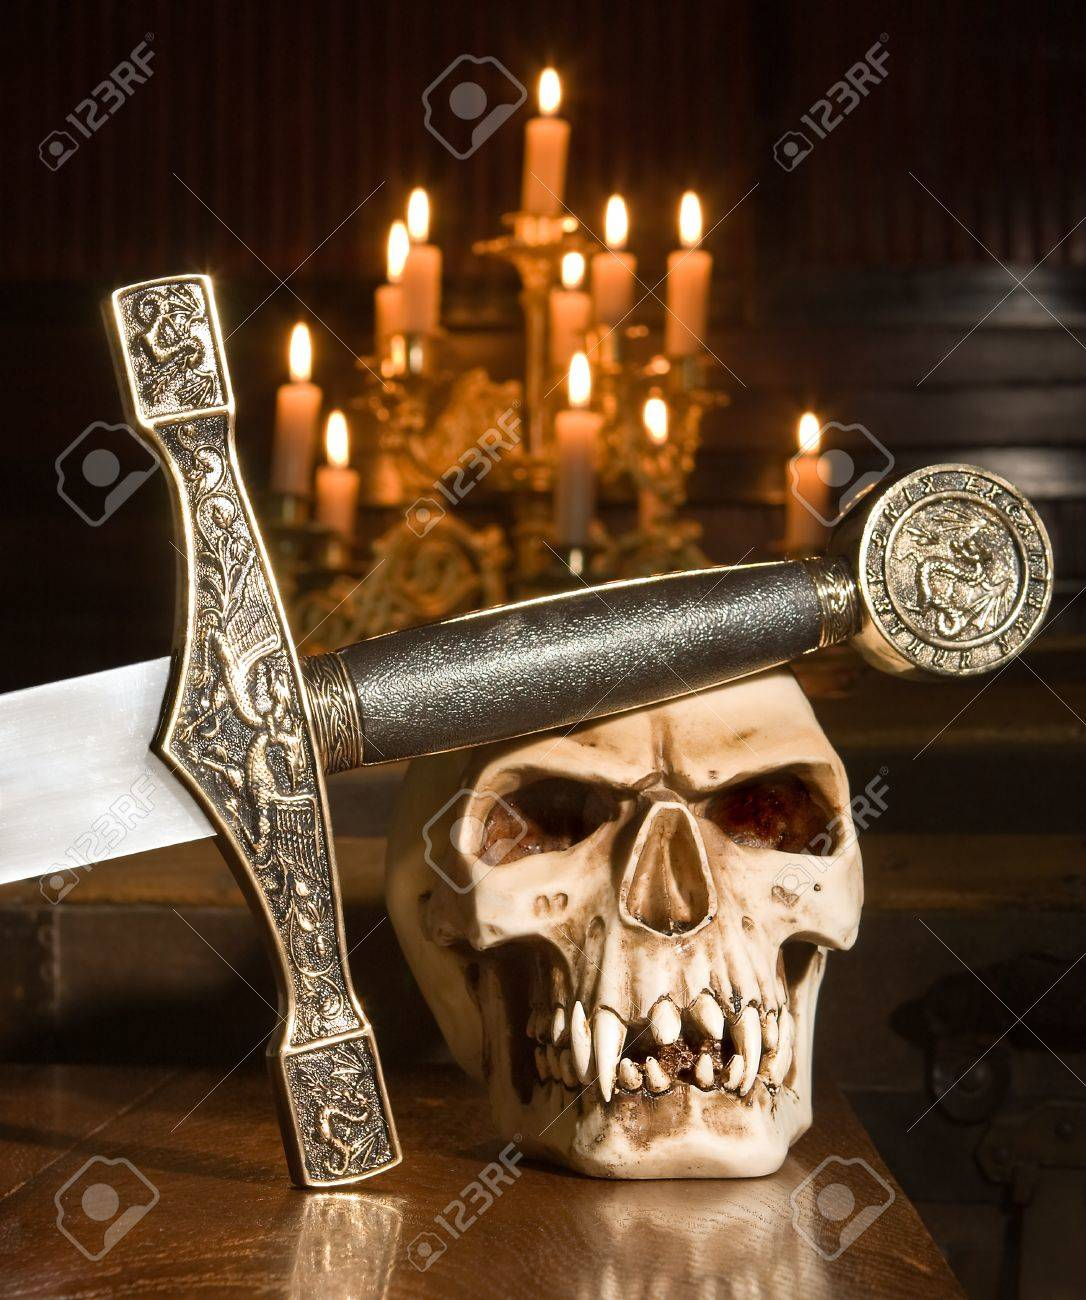 Medieval sword and skull lit by candles Stock Photo - 10480448